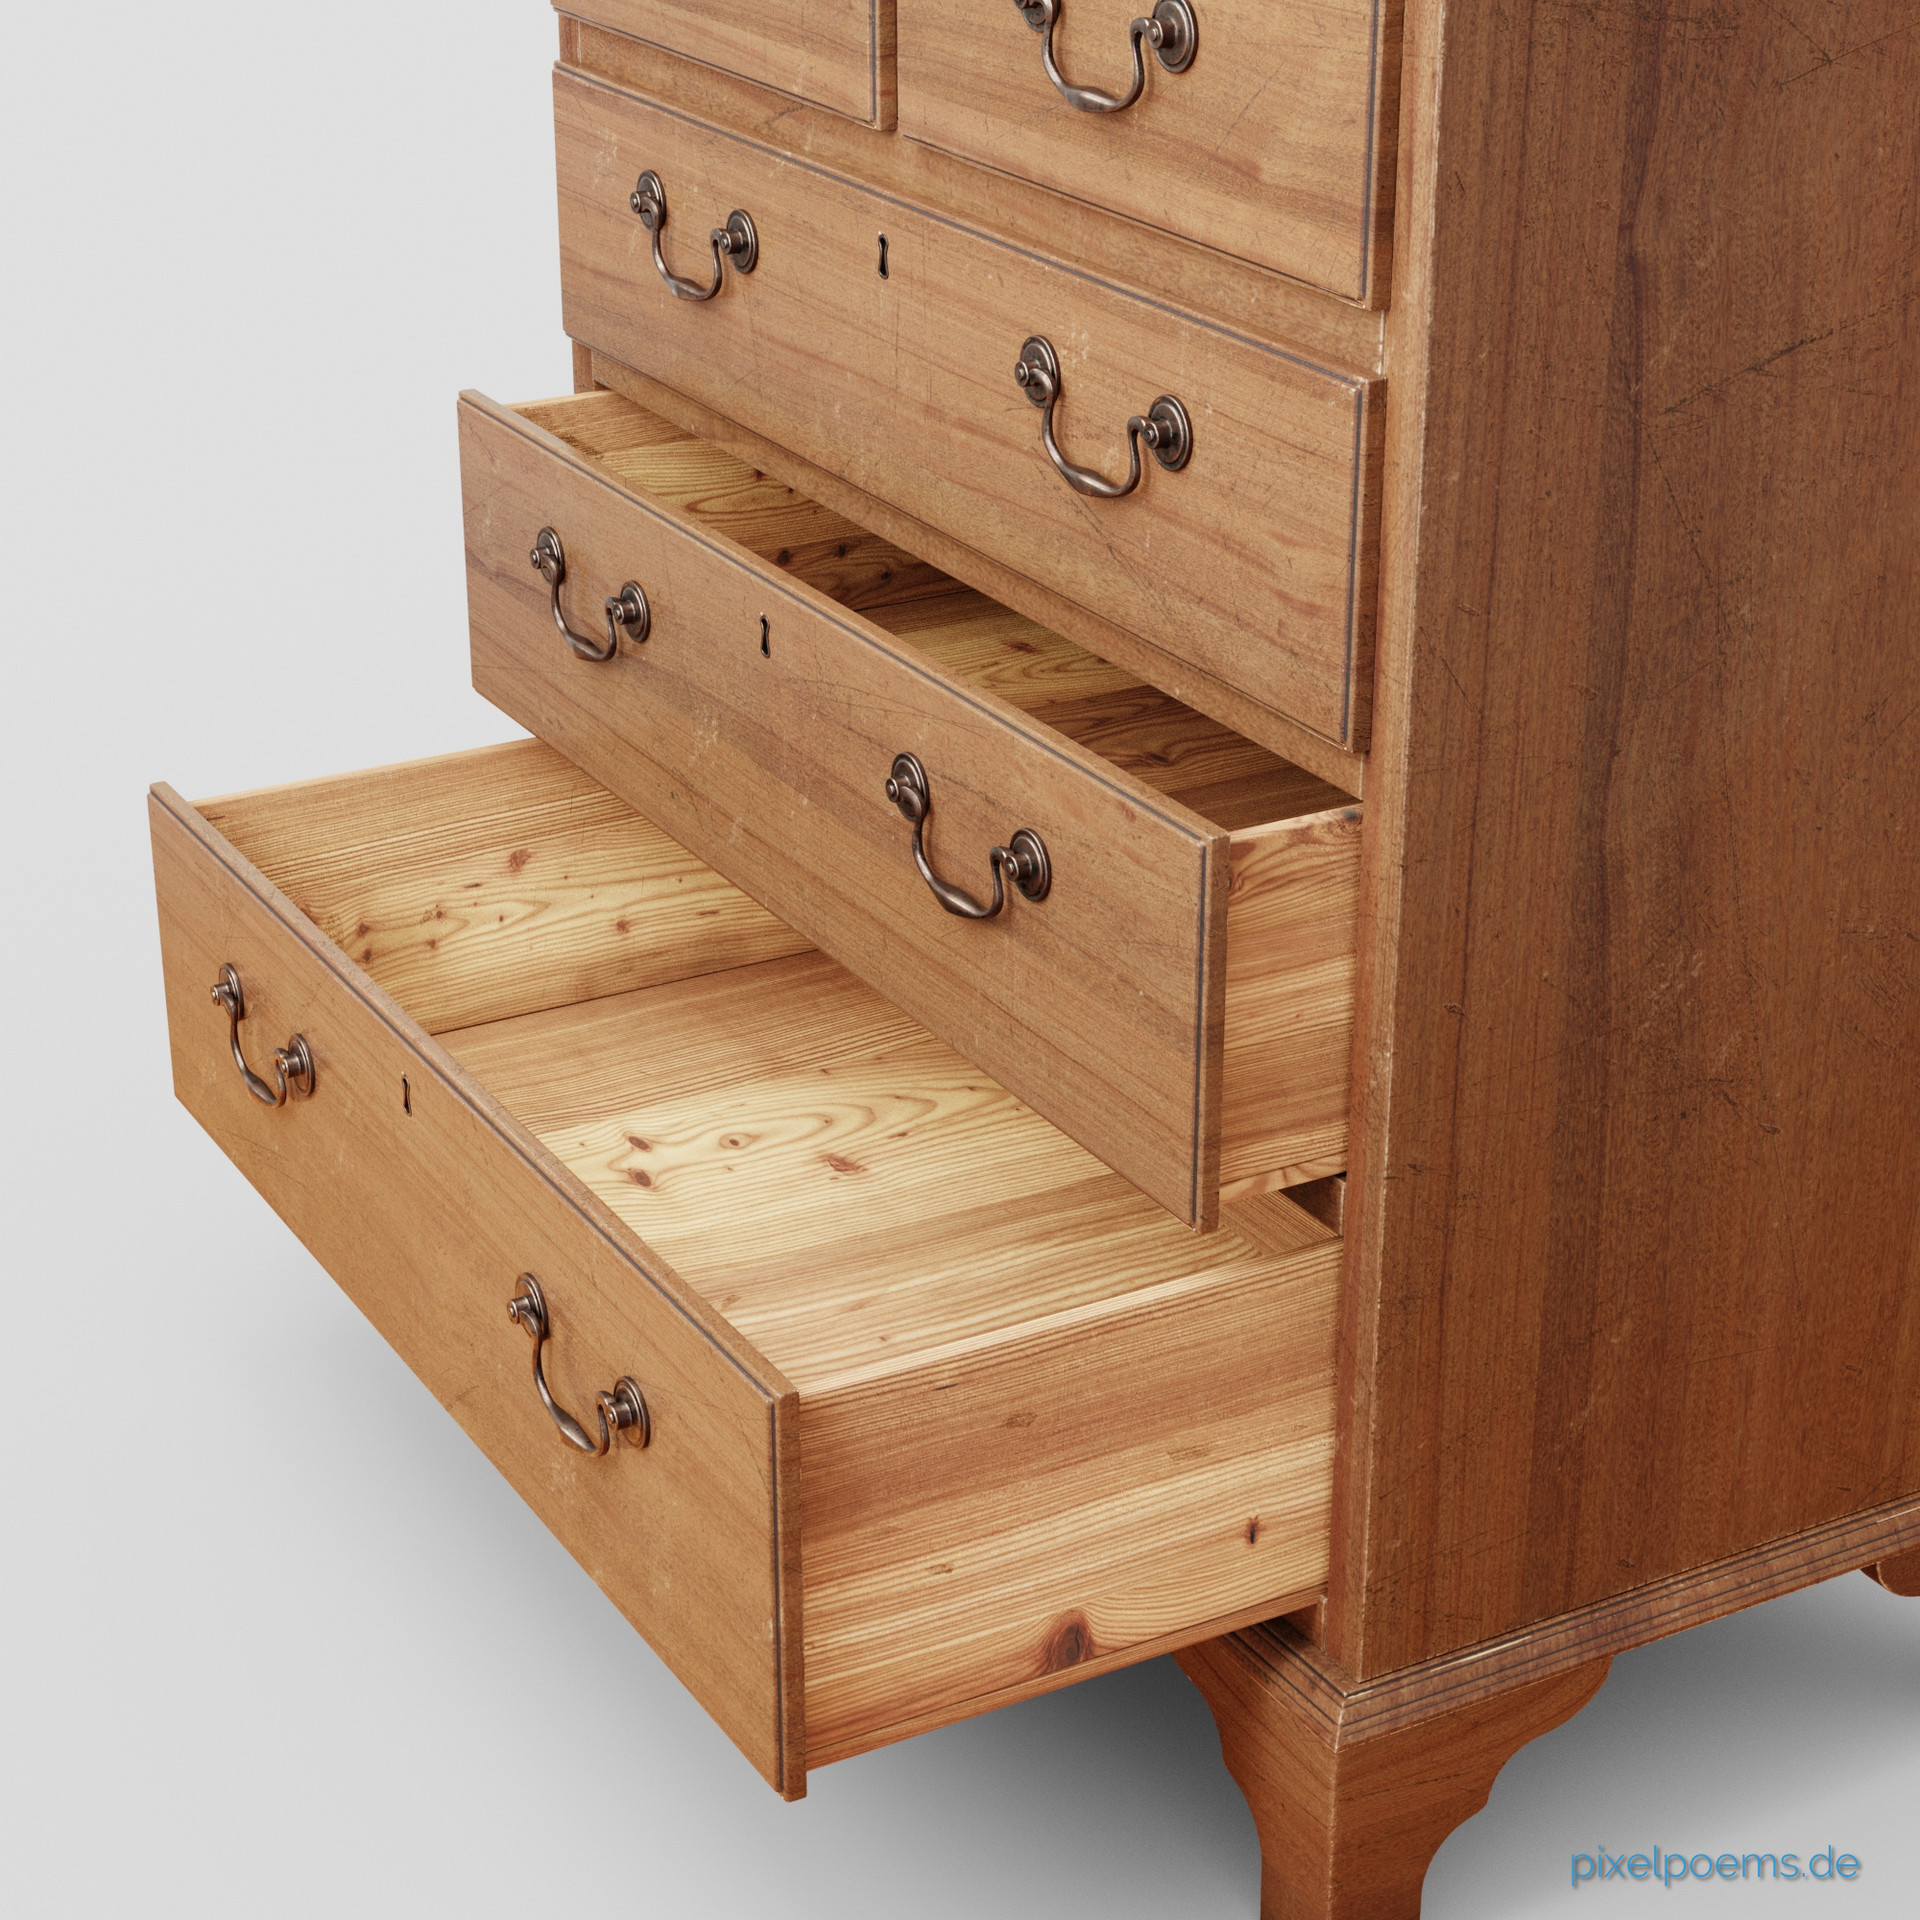 Karl andreas gross mahagony chest of drawers webversion 05